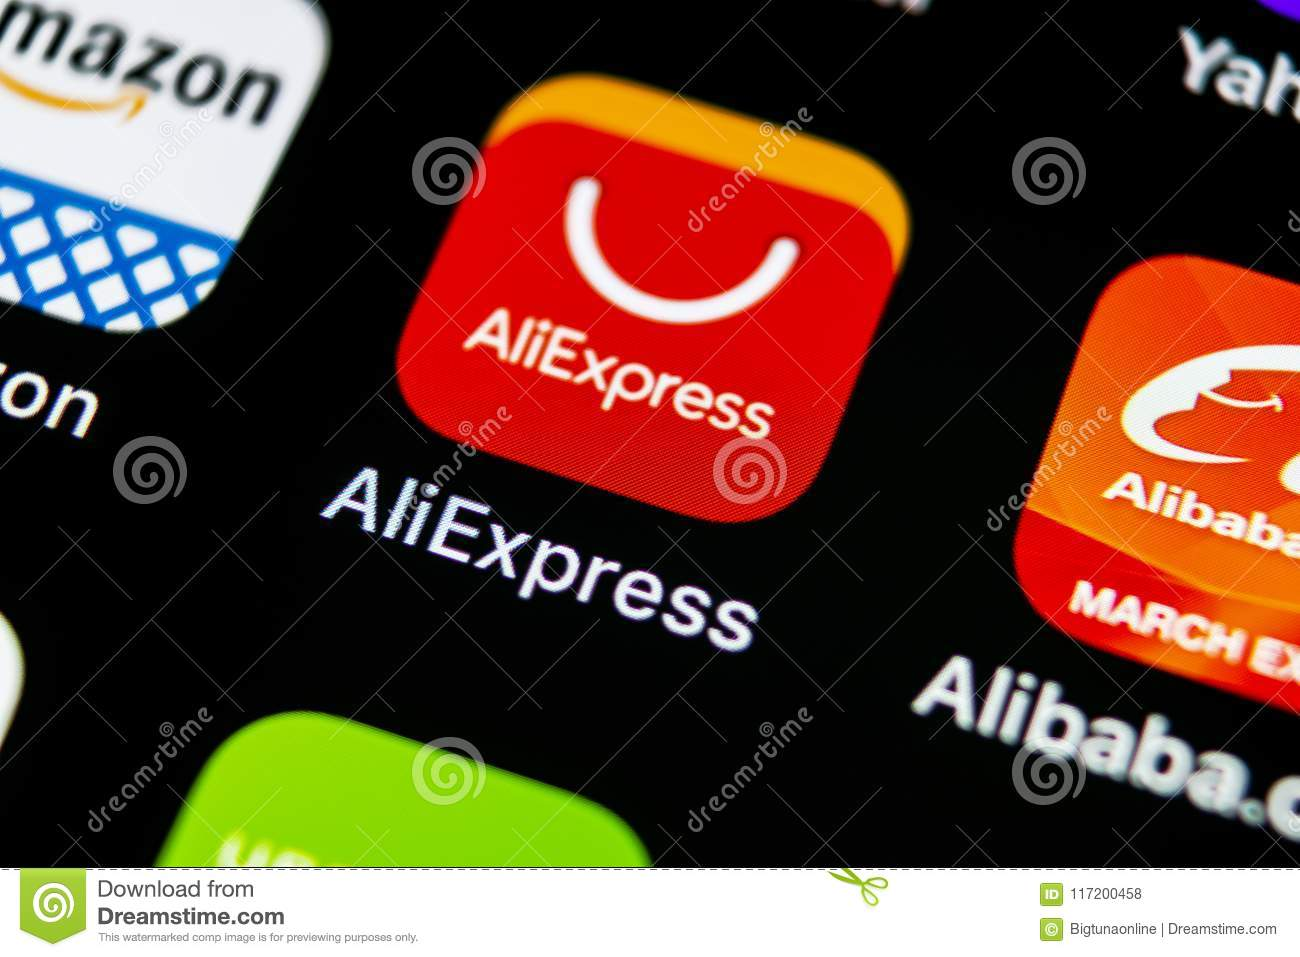 Aliexpress Application Icon On Apple Iphone X Smartphone Screen